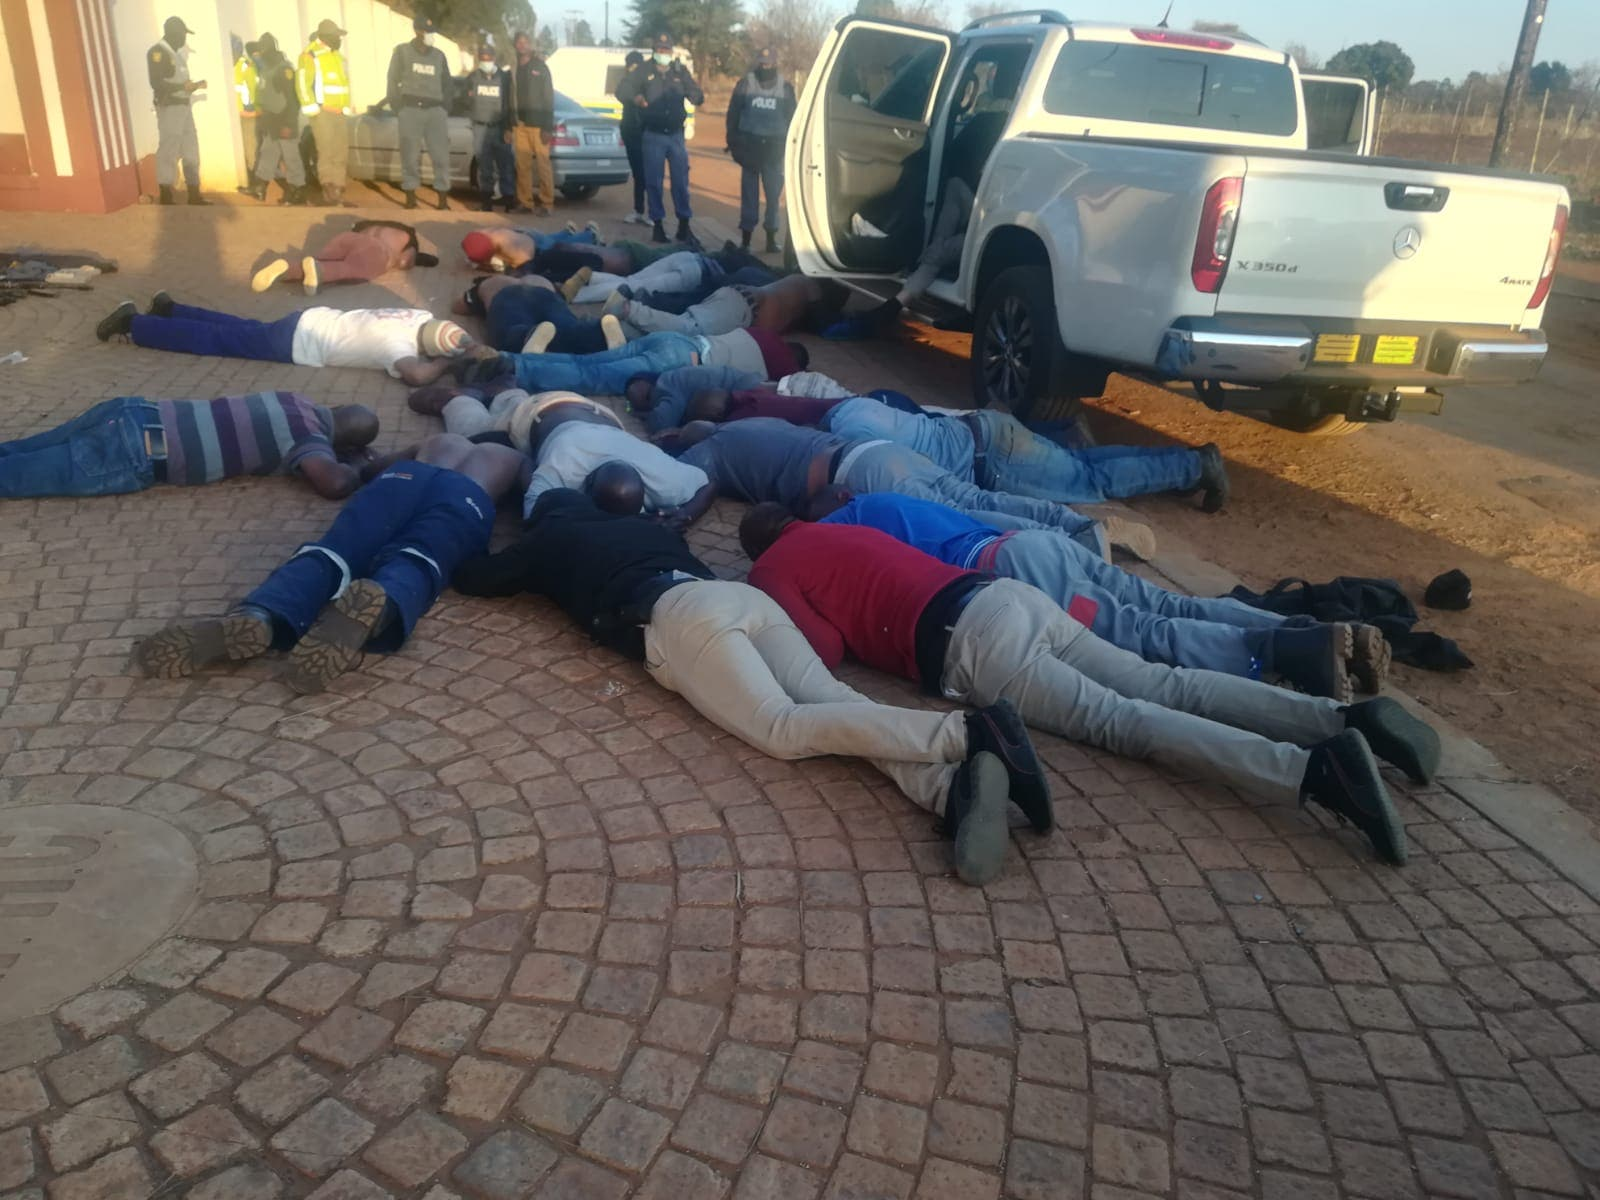 South African church attack: Five dead after 'hostage situation'